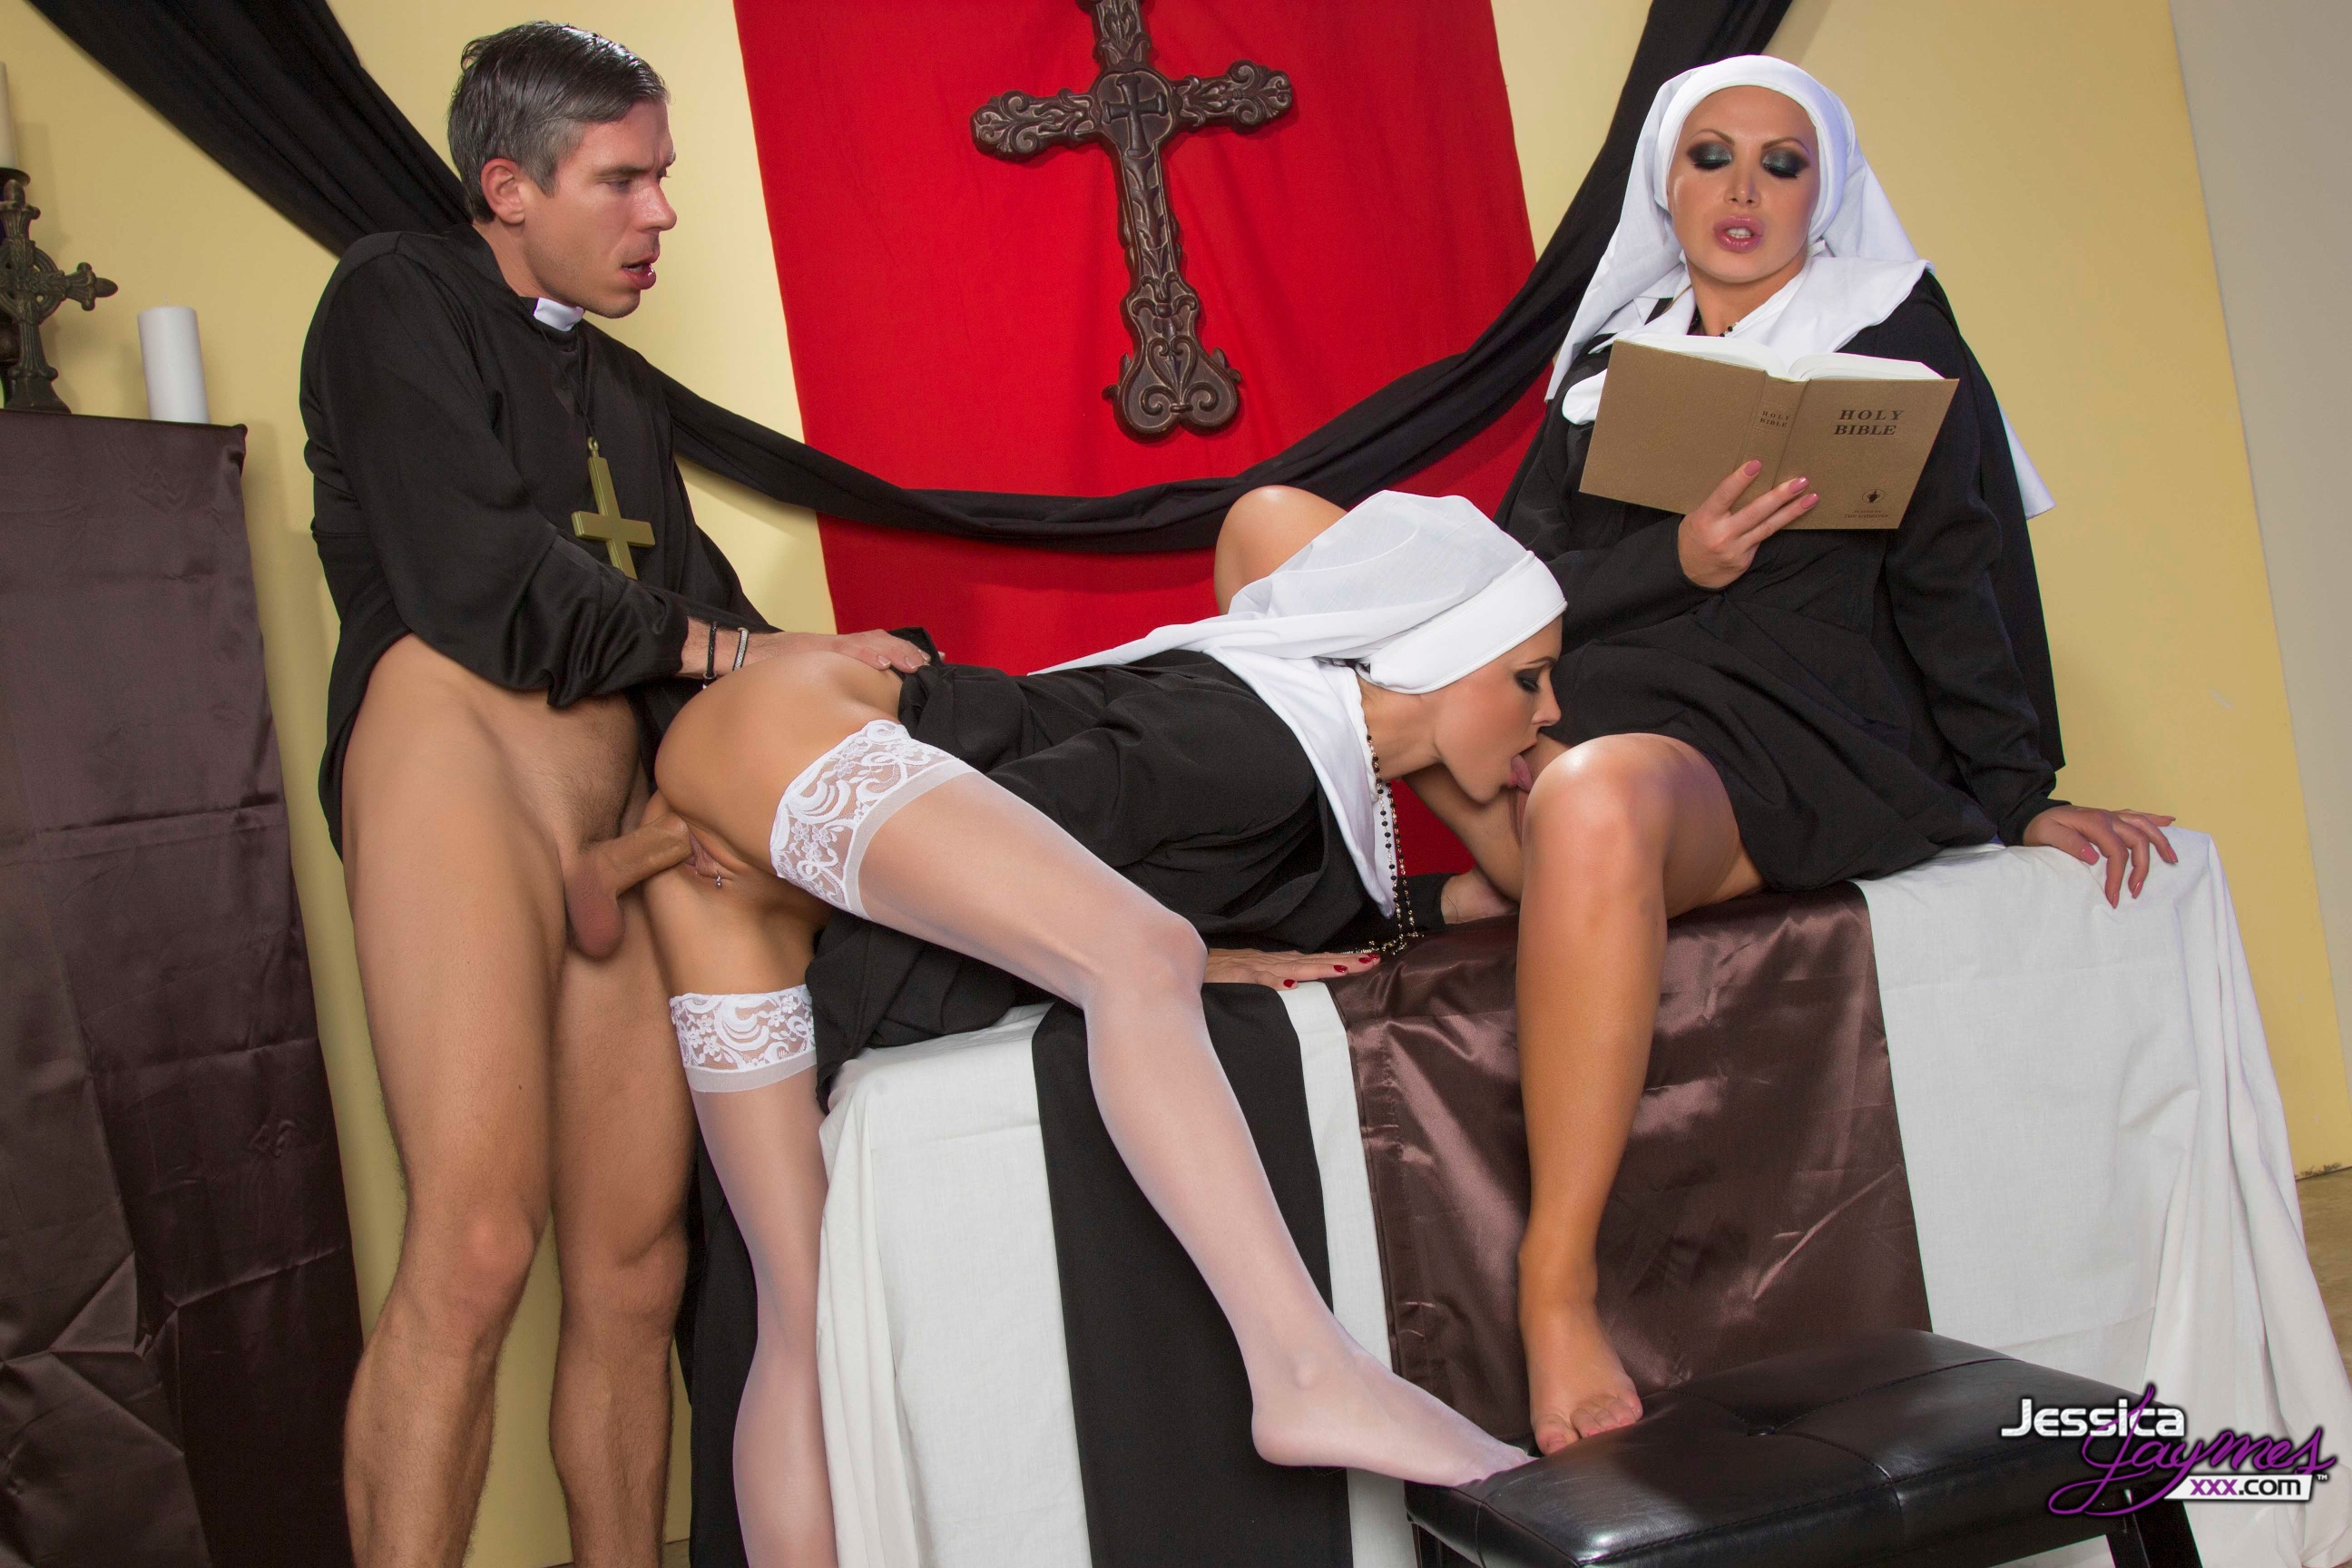 Priest xxx photo erotic image